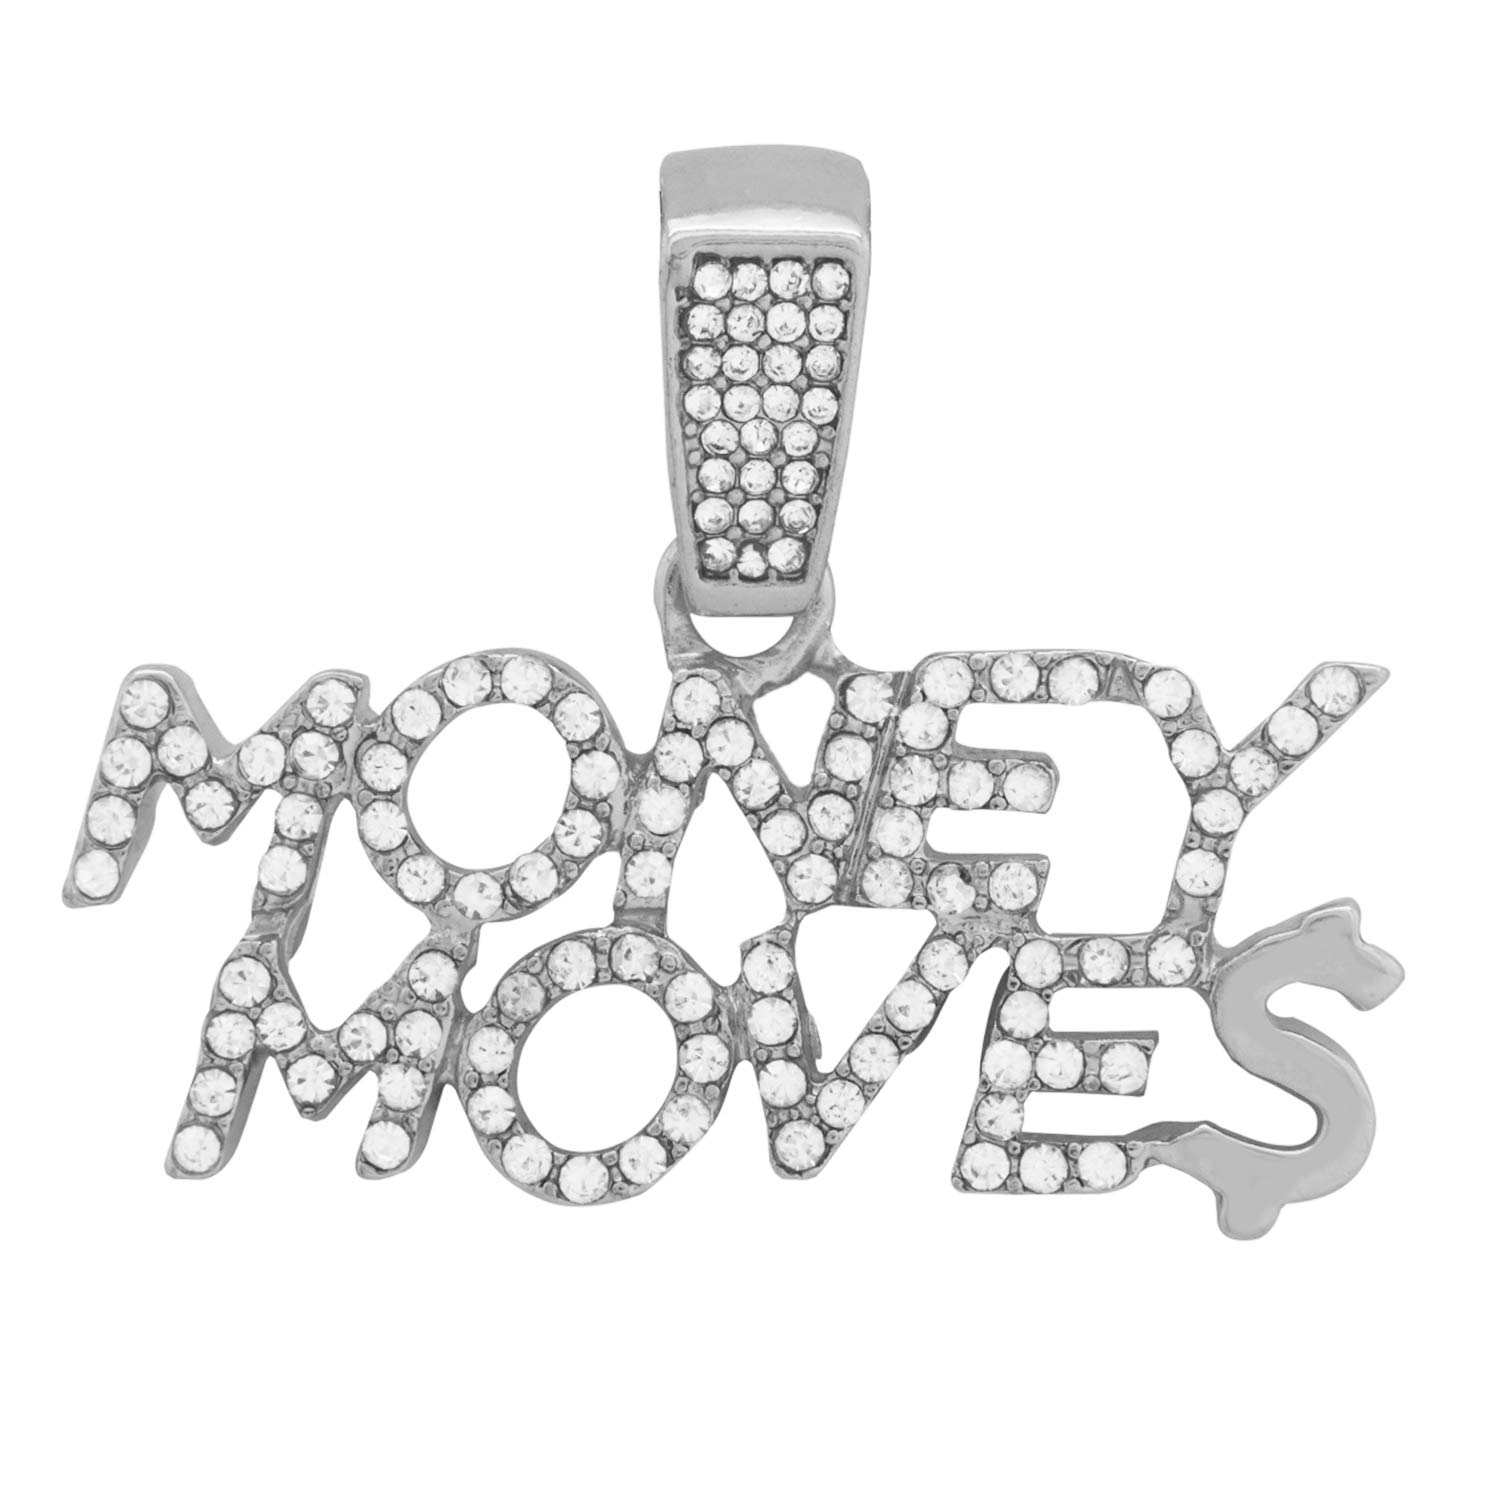 White Gold-Tone Hip Hop Bling Iced Out Cardi B Money Moves Letter Pendant with 16 Tennis Chain and 24 Rope Chain